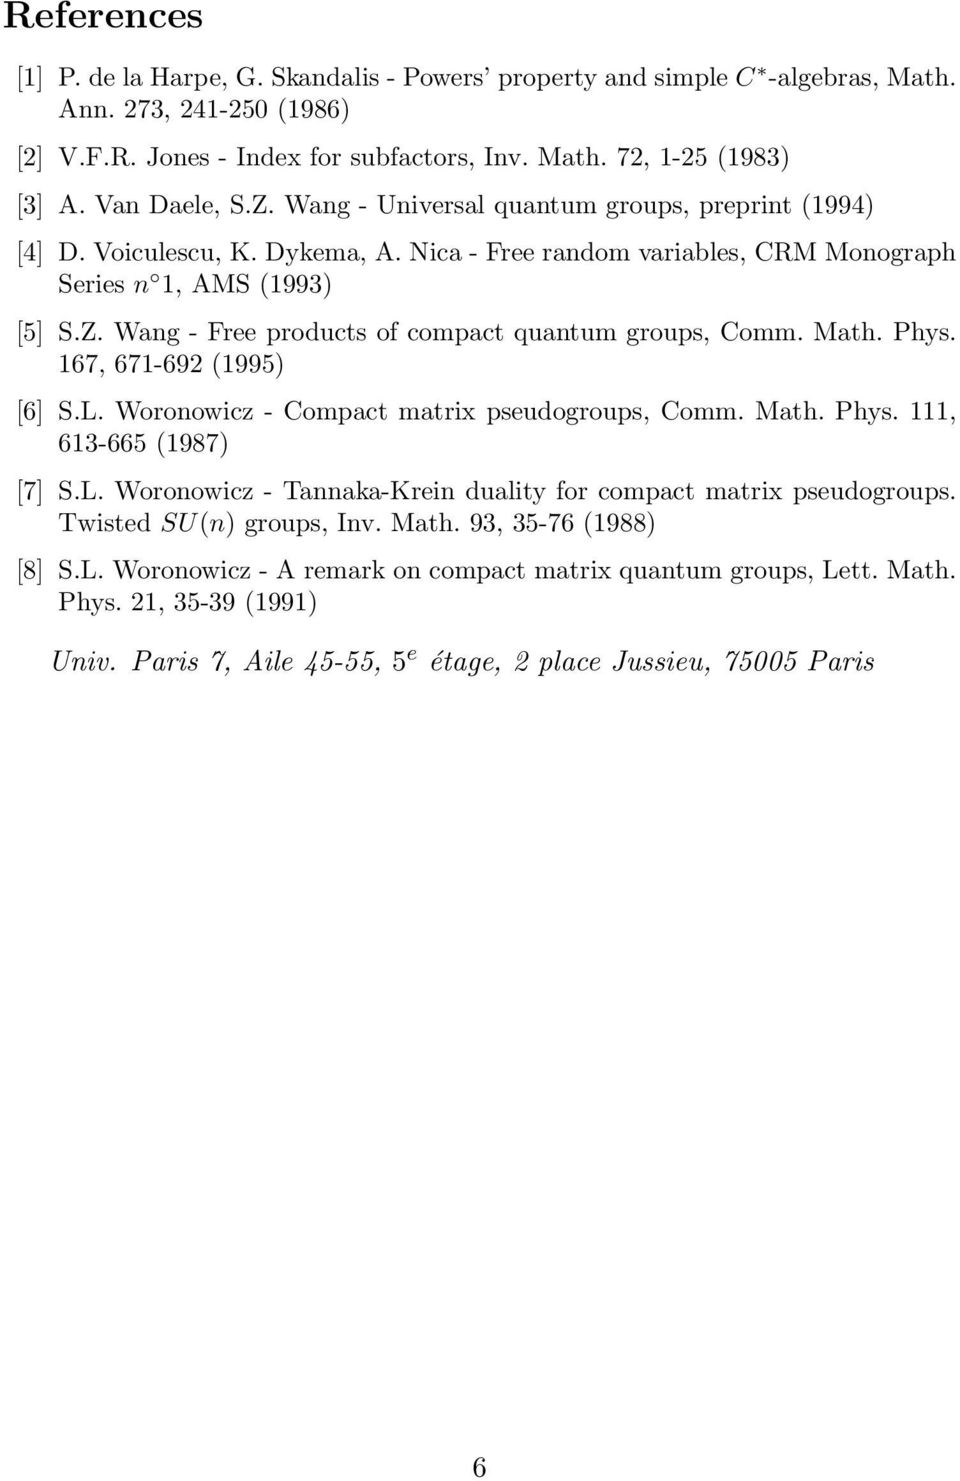 Math. Phys. 167, 671-692 (1995) [6] S.L. Woronowicz - Compact matrix pseudogroups, Comm. Math. Phys. 111, 613-665 (1987) [7] S.L. Woronowicz - Tannaka-Krein duality for compact matrix pseudogroups.